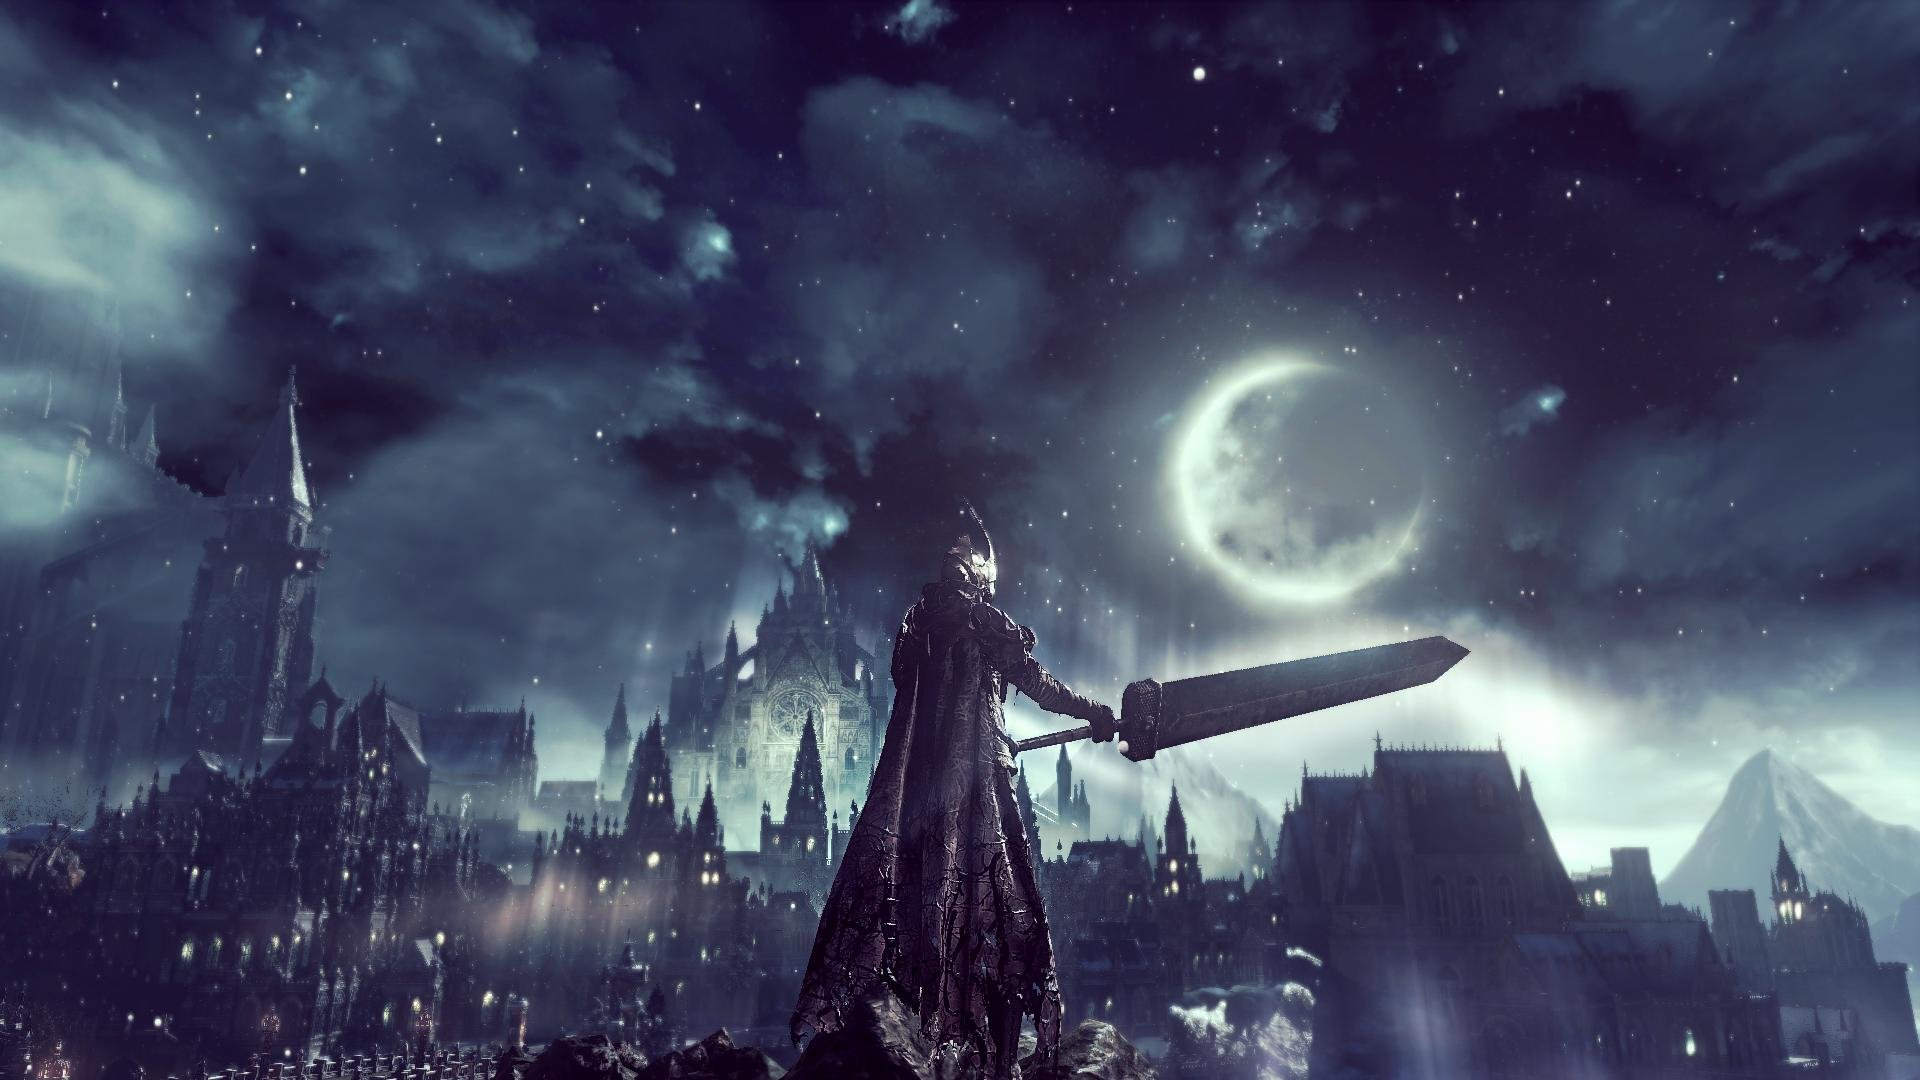 Dark Souls 3 Wallpapers 1920x1080 Full Hd 1080p Desktop Backgrounds